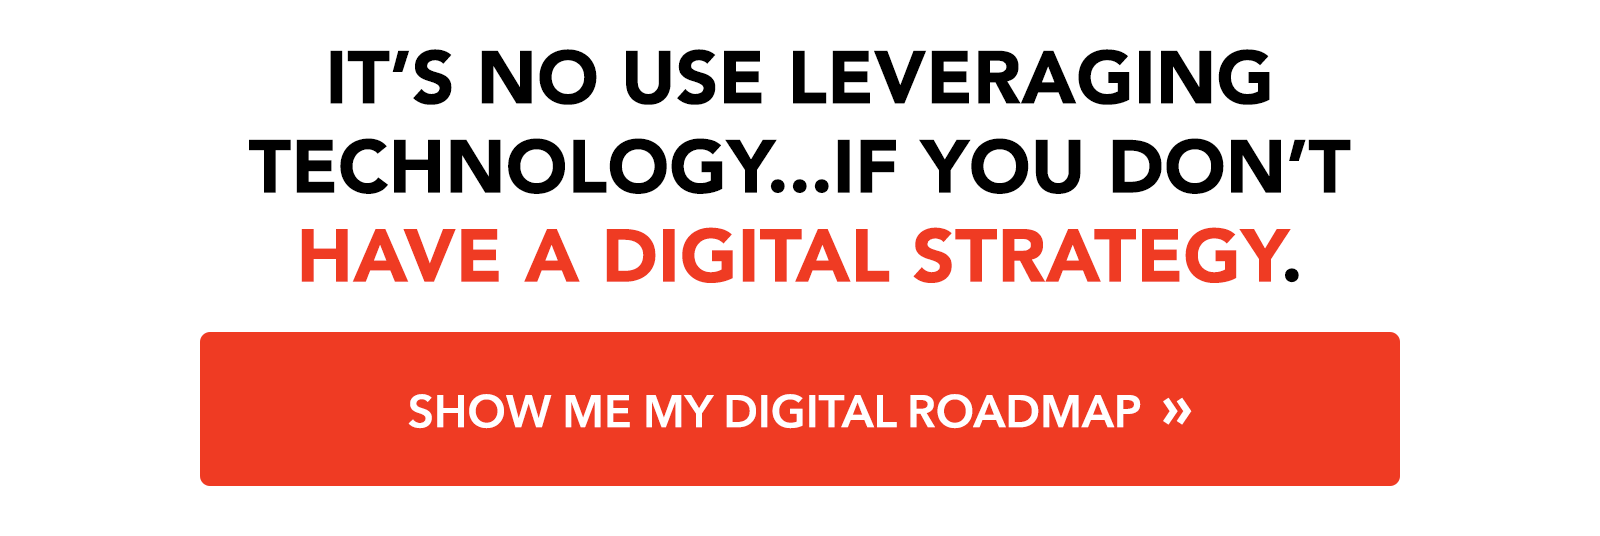 It's no use leveraging technology...if you don't have a digital strategy: Show me my digital roadmap »